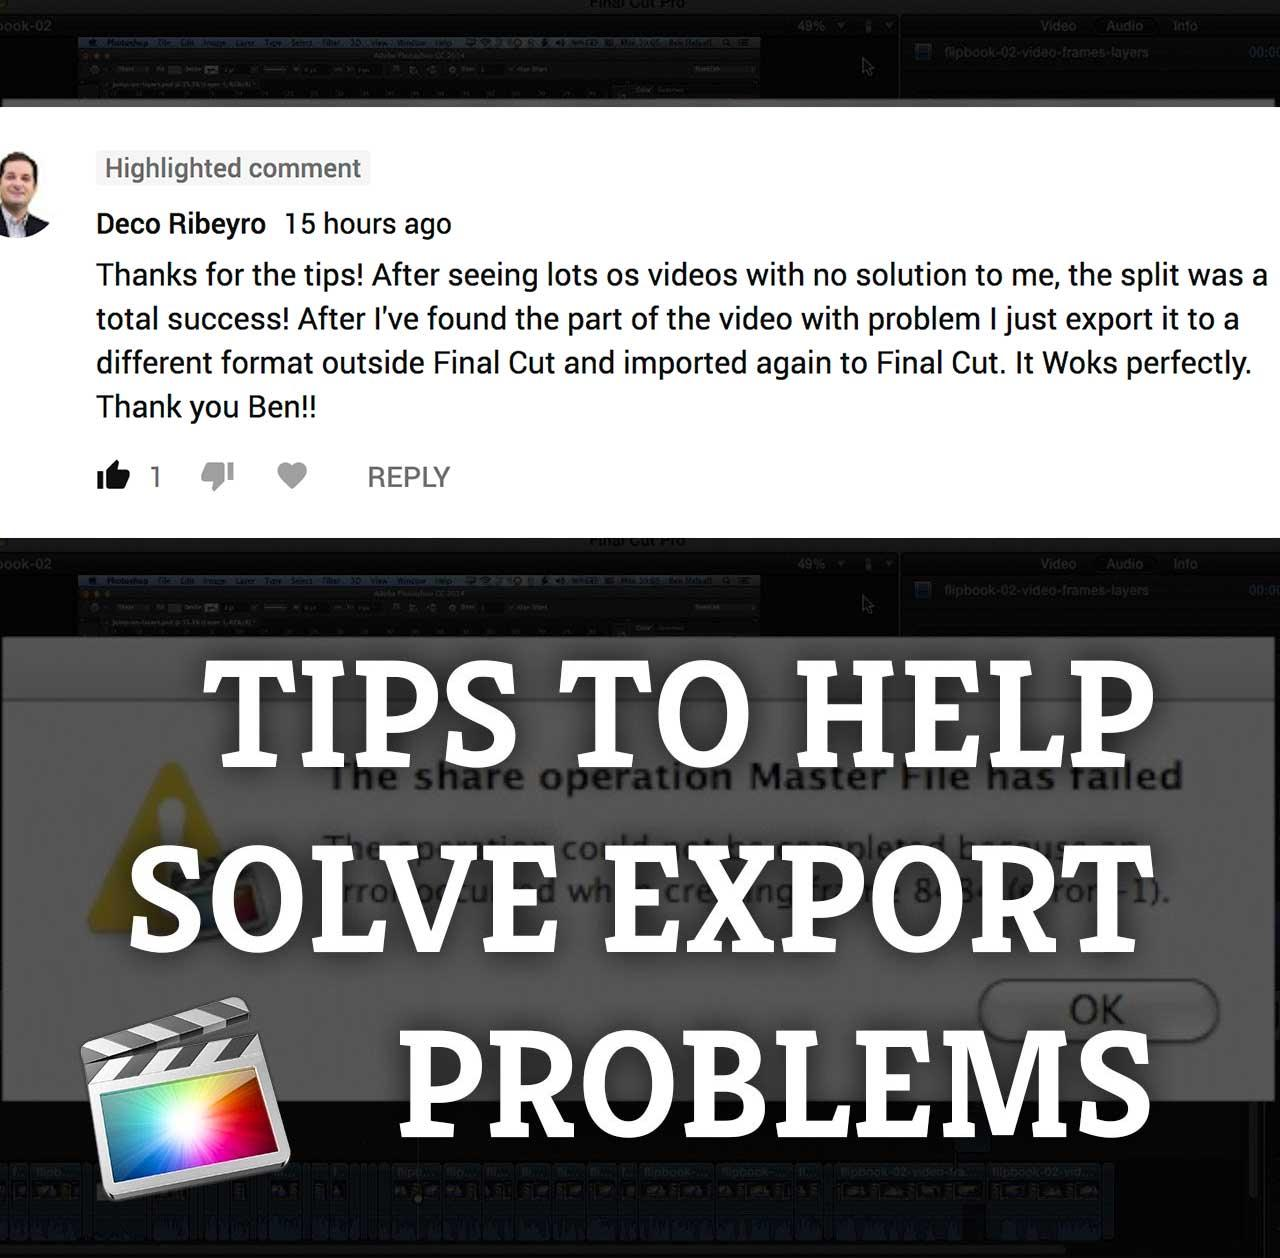 Final Cut Pro X: Tips for Solving Export Problems - Skillshare